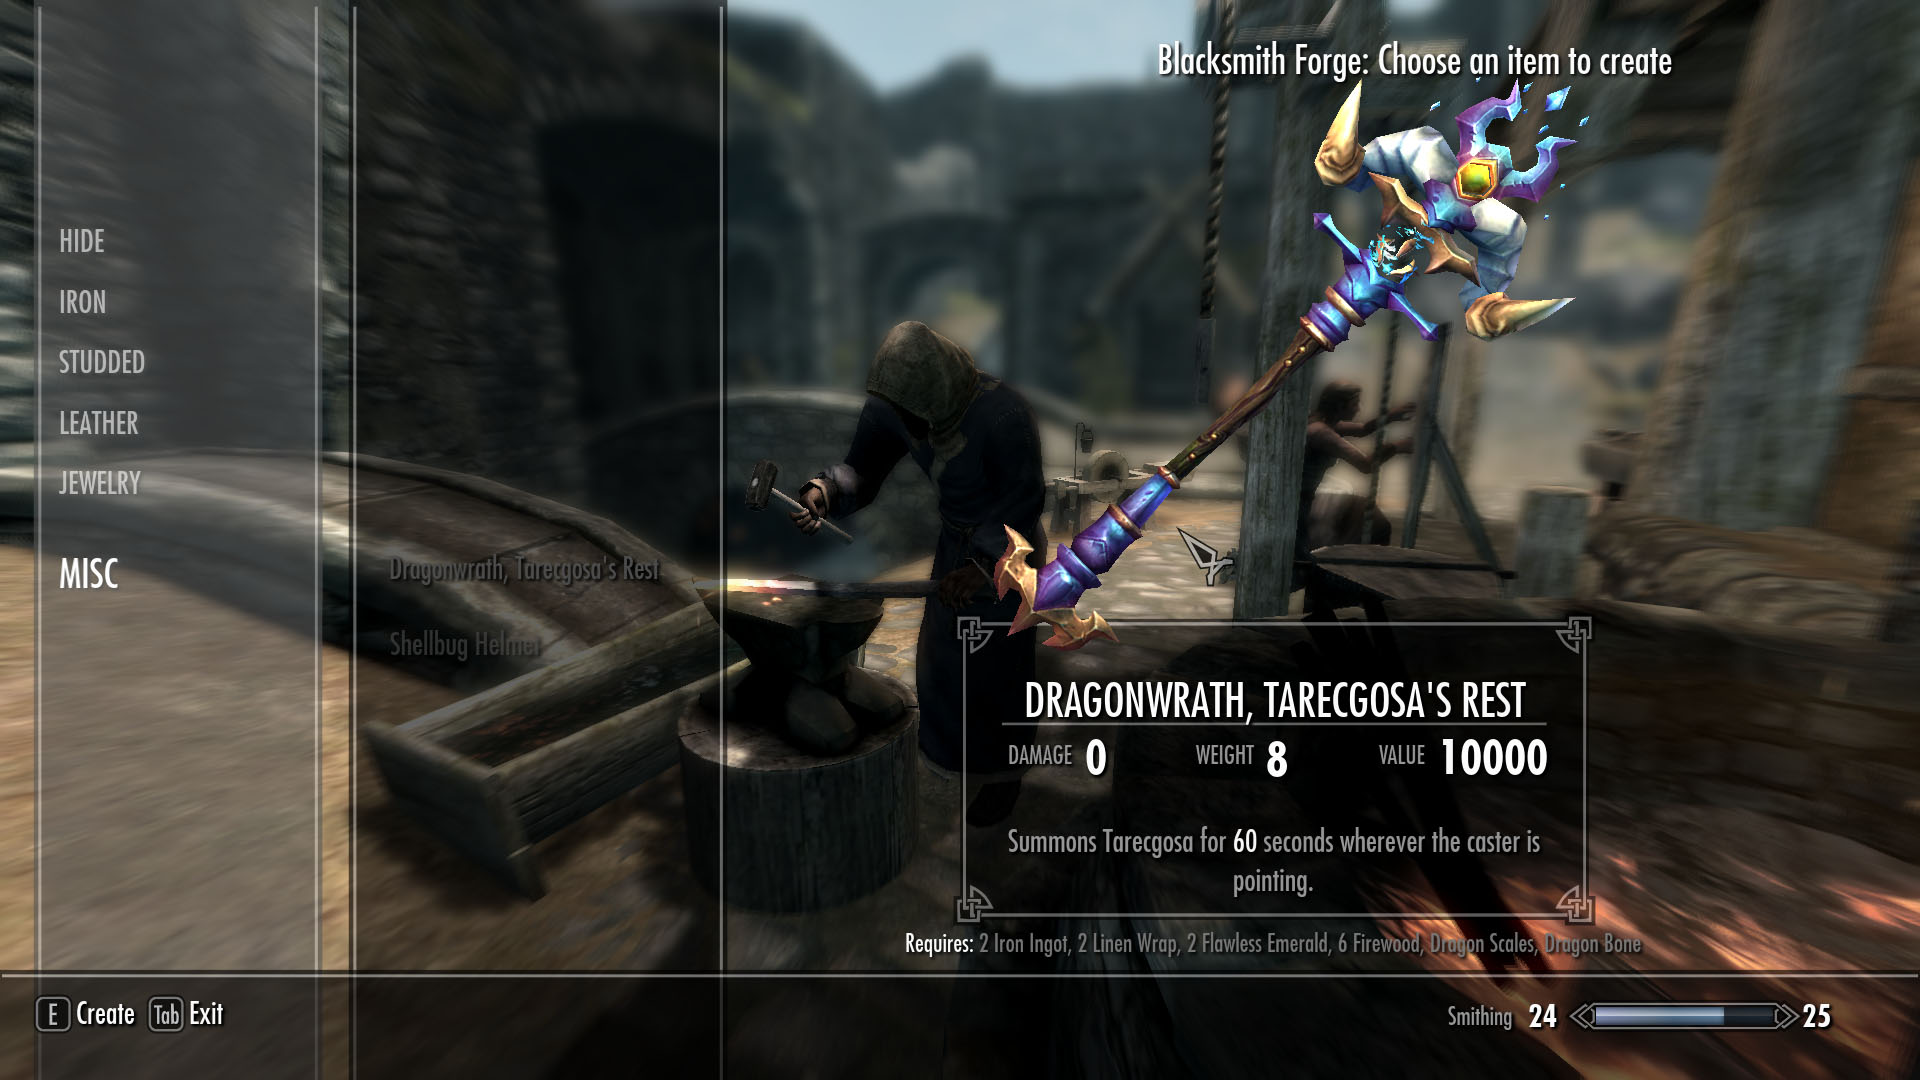 Dragonswrath, Tarecgosa's end is impossible now.   XPOff